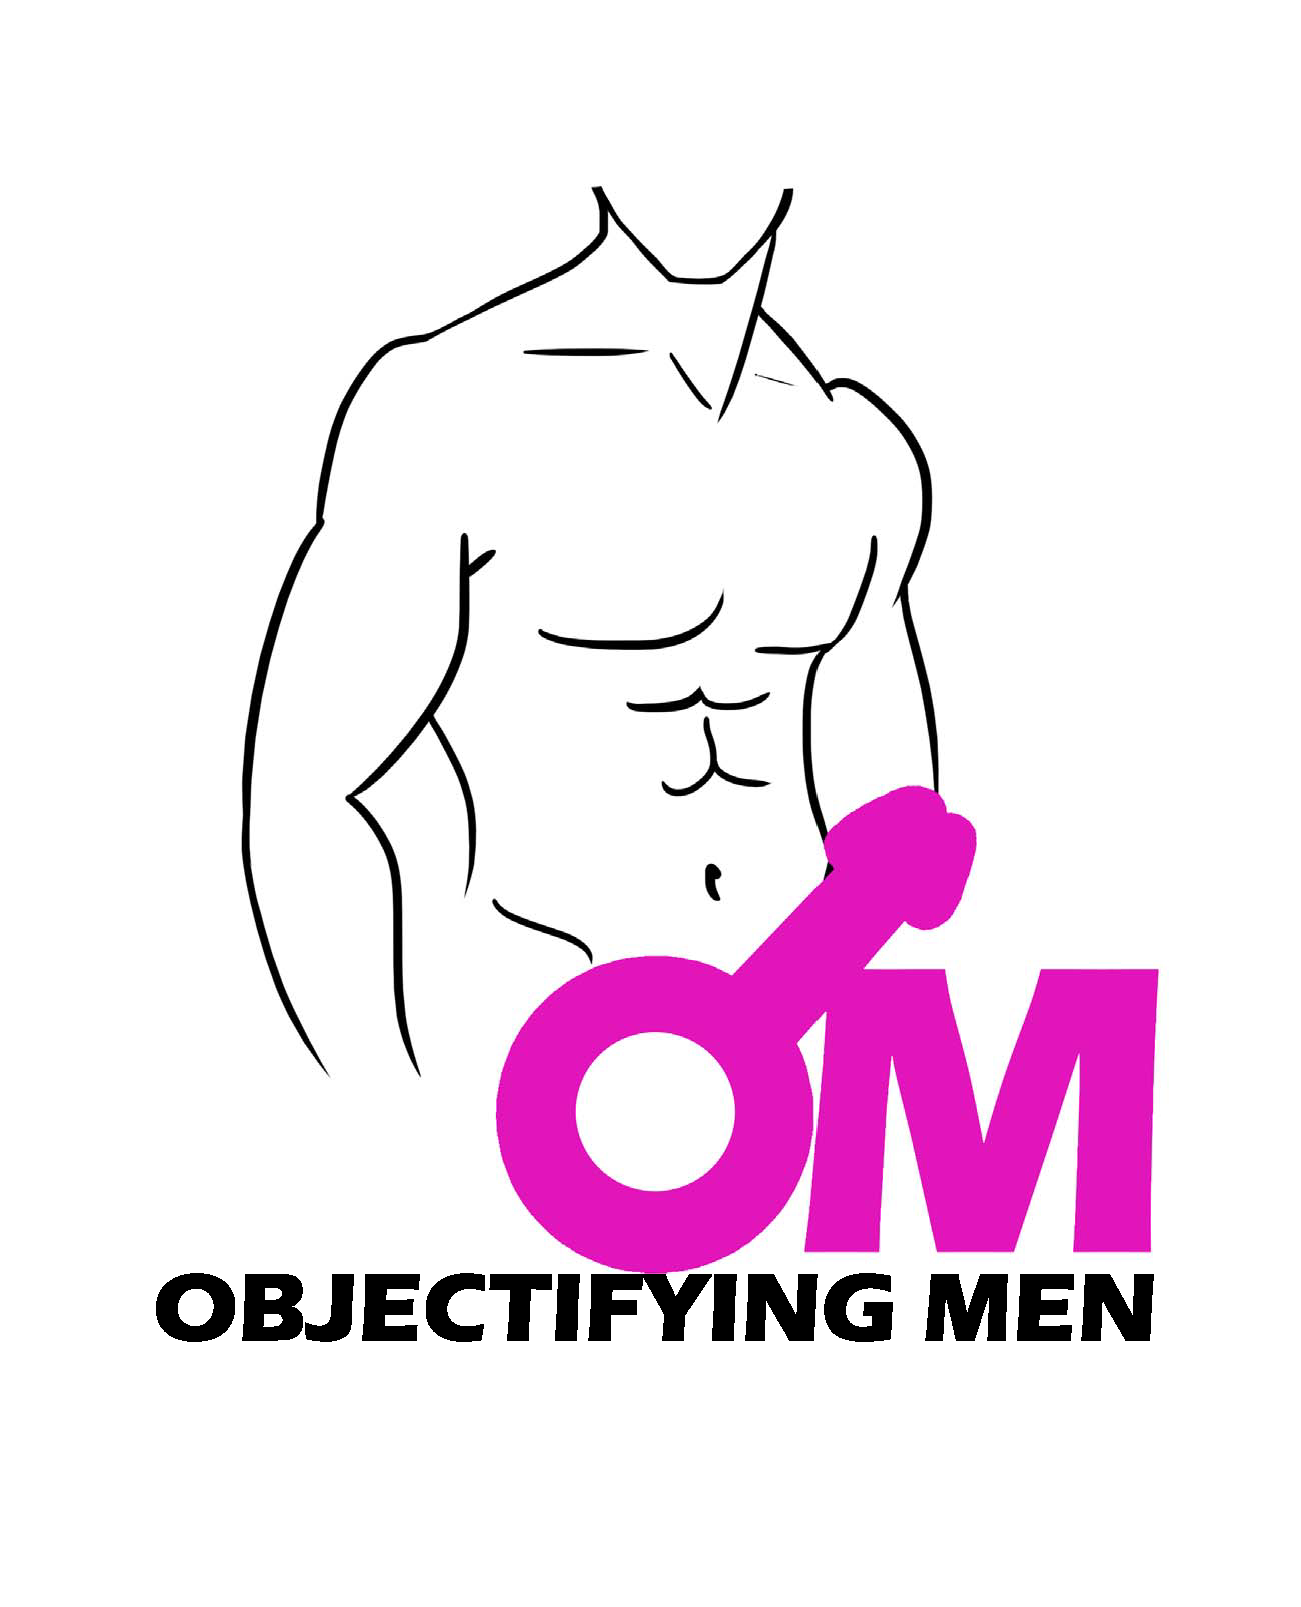 objectifying men logo eps.png